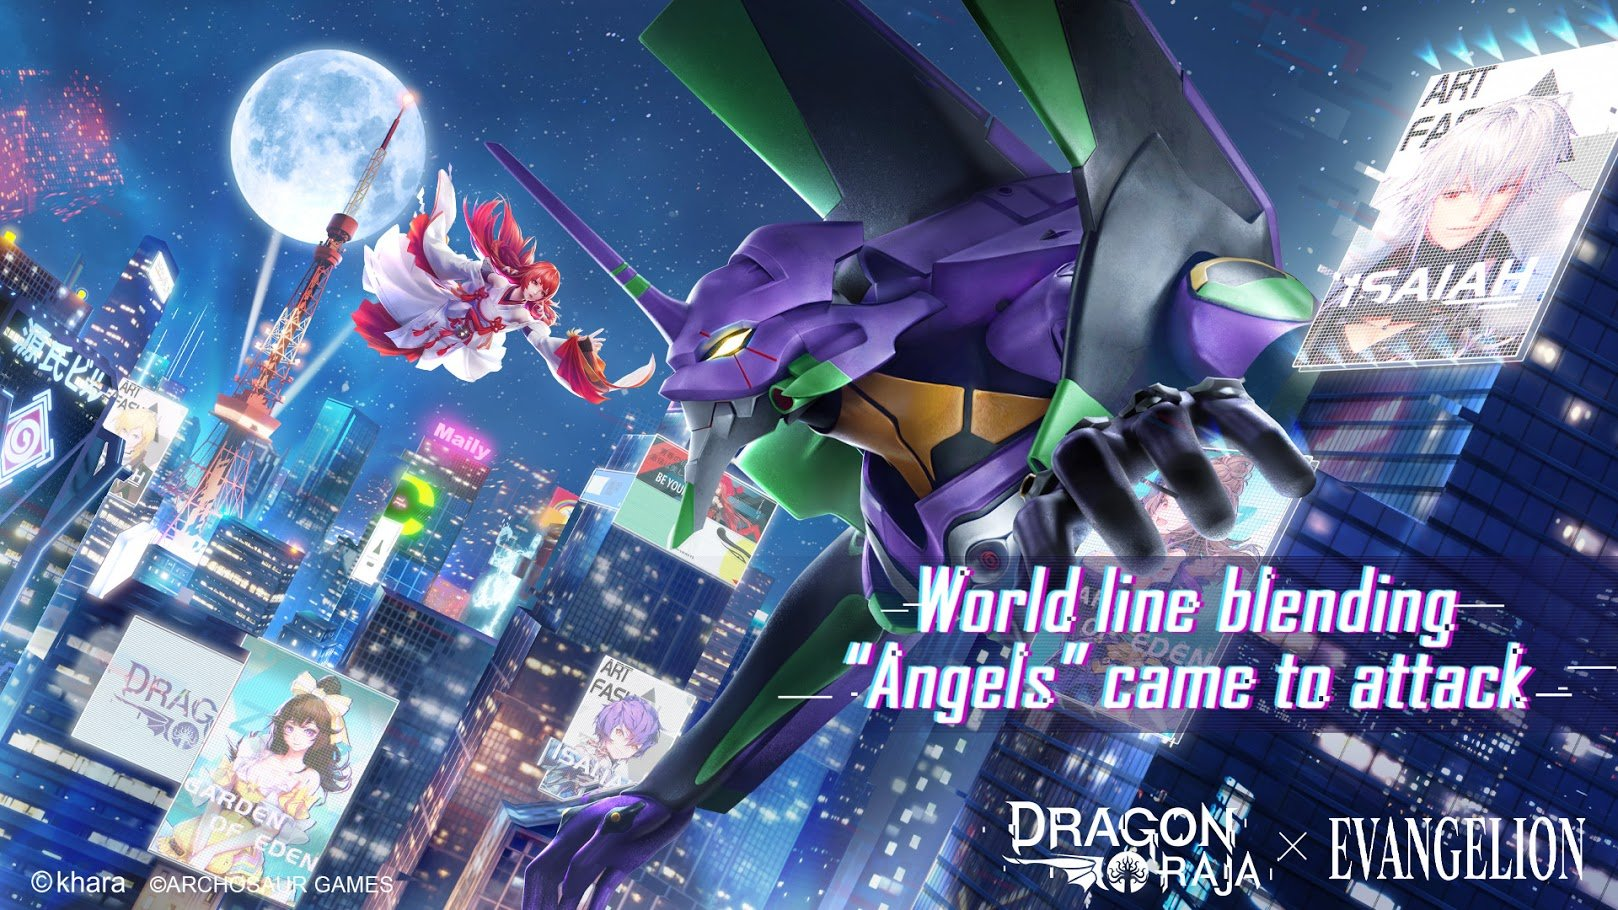 Dragon Raja X Evangelion Collaboration Event Gameplay